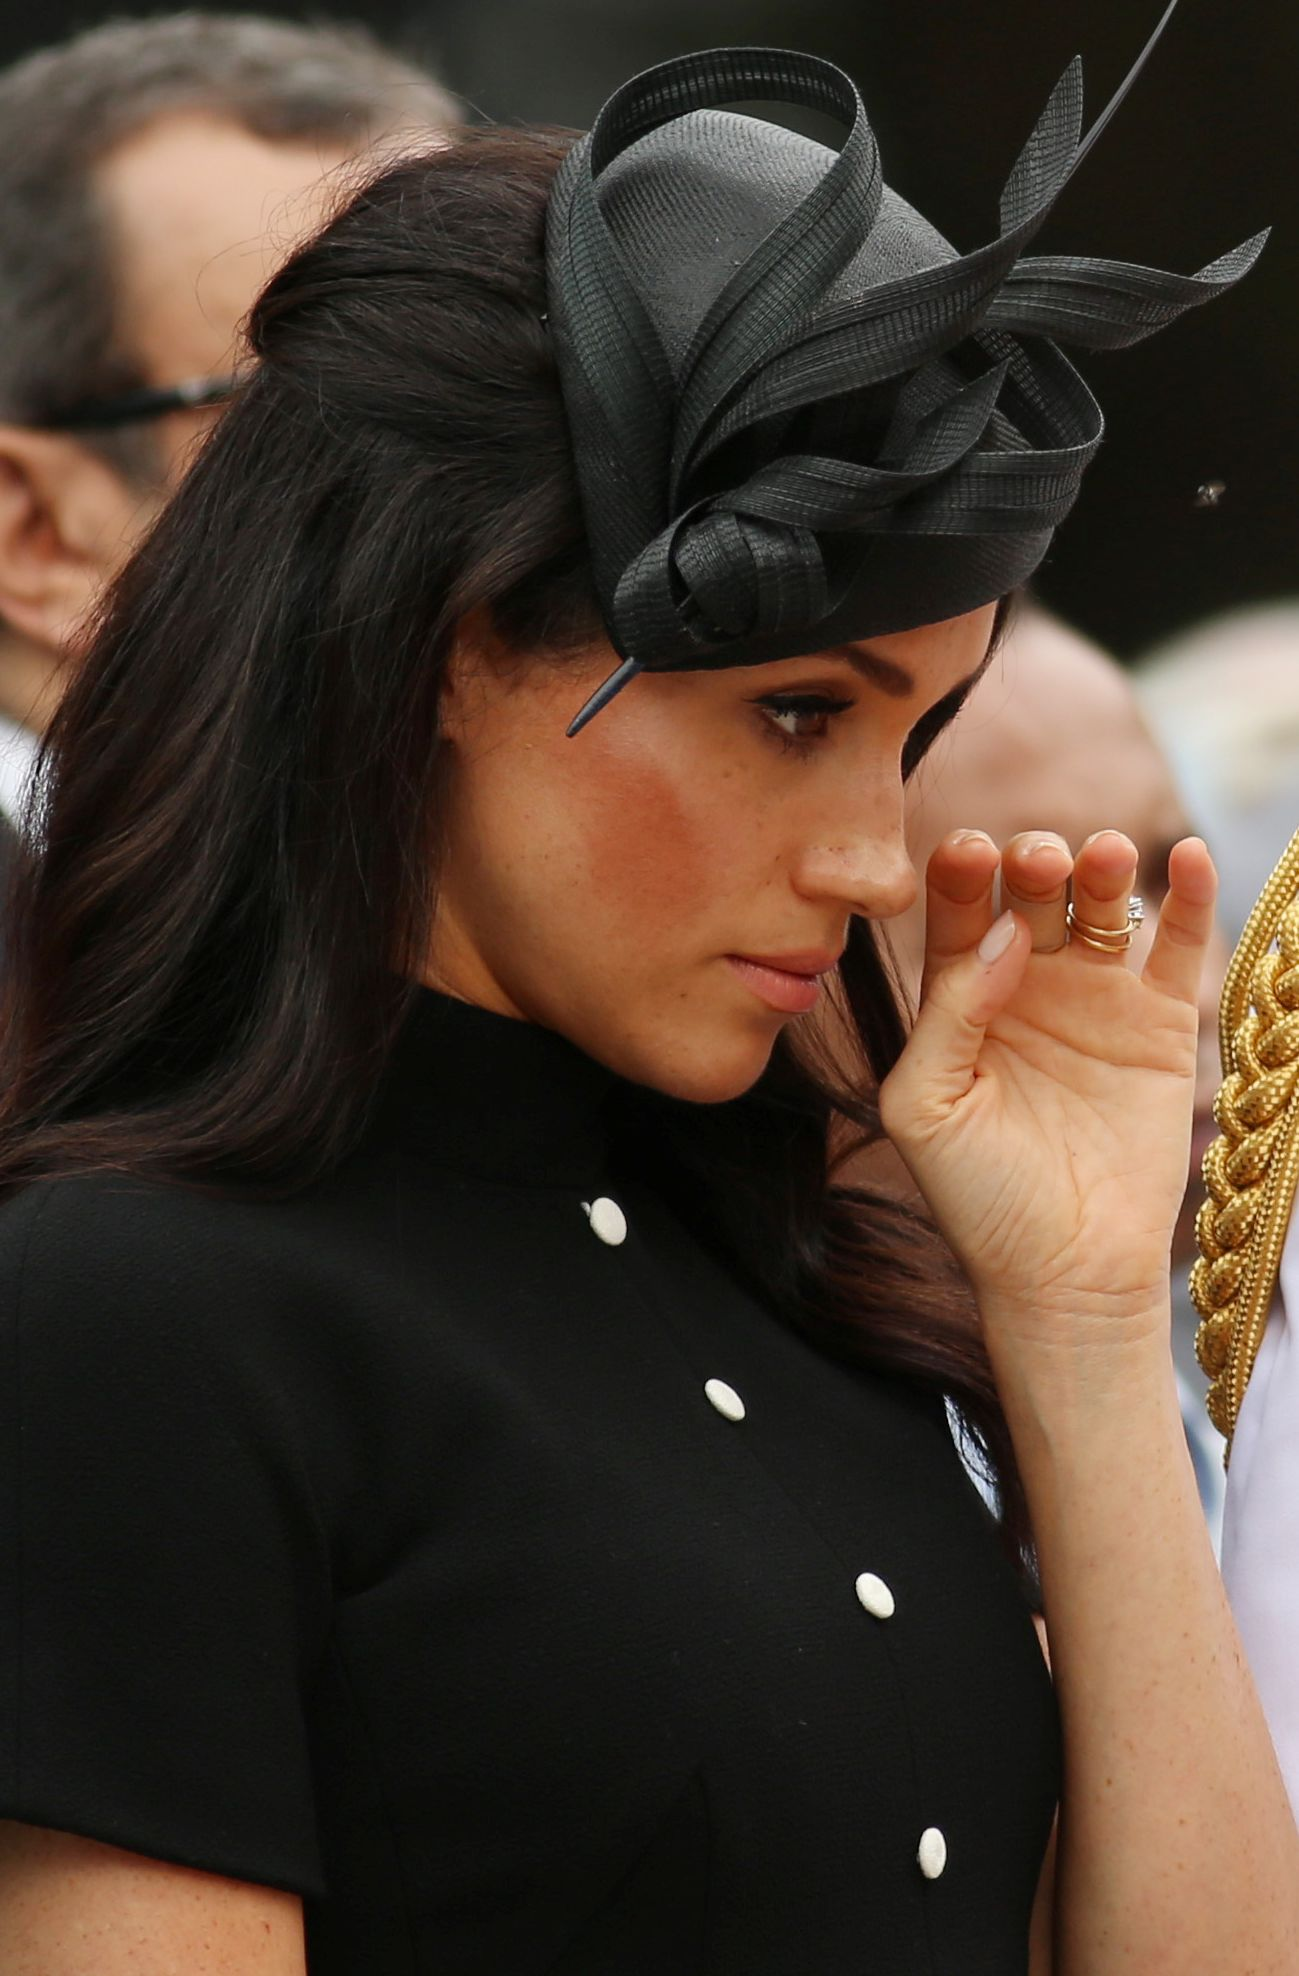 Meghan Markle, the Duchess of Sussex, visits the new ANZAC memorial in Hyde Park